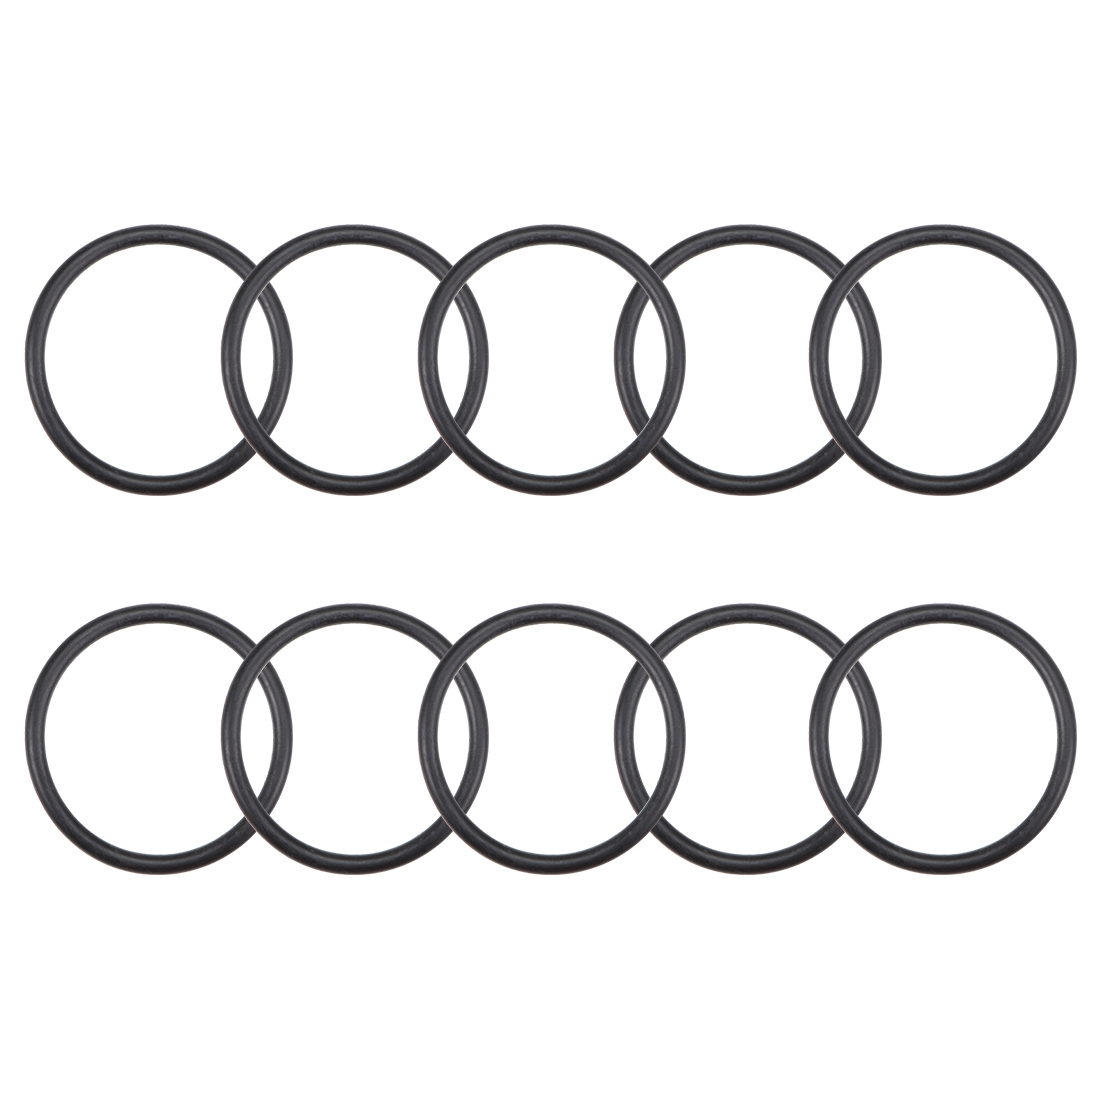 O-Rings Nitrile Rubber 29mm x 34.3mm x 2.65mm Round Seal Gasket 10 Pcs